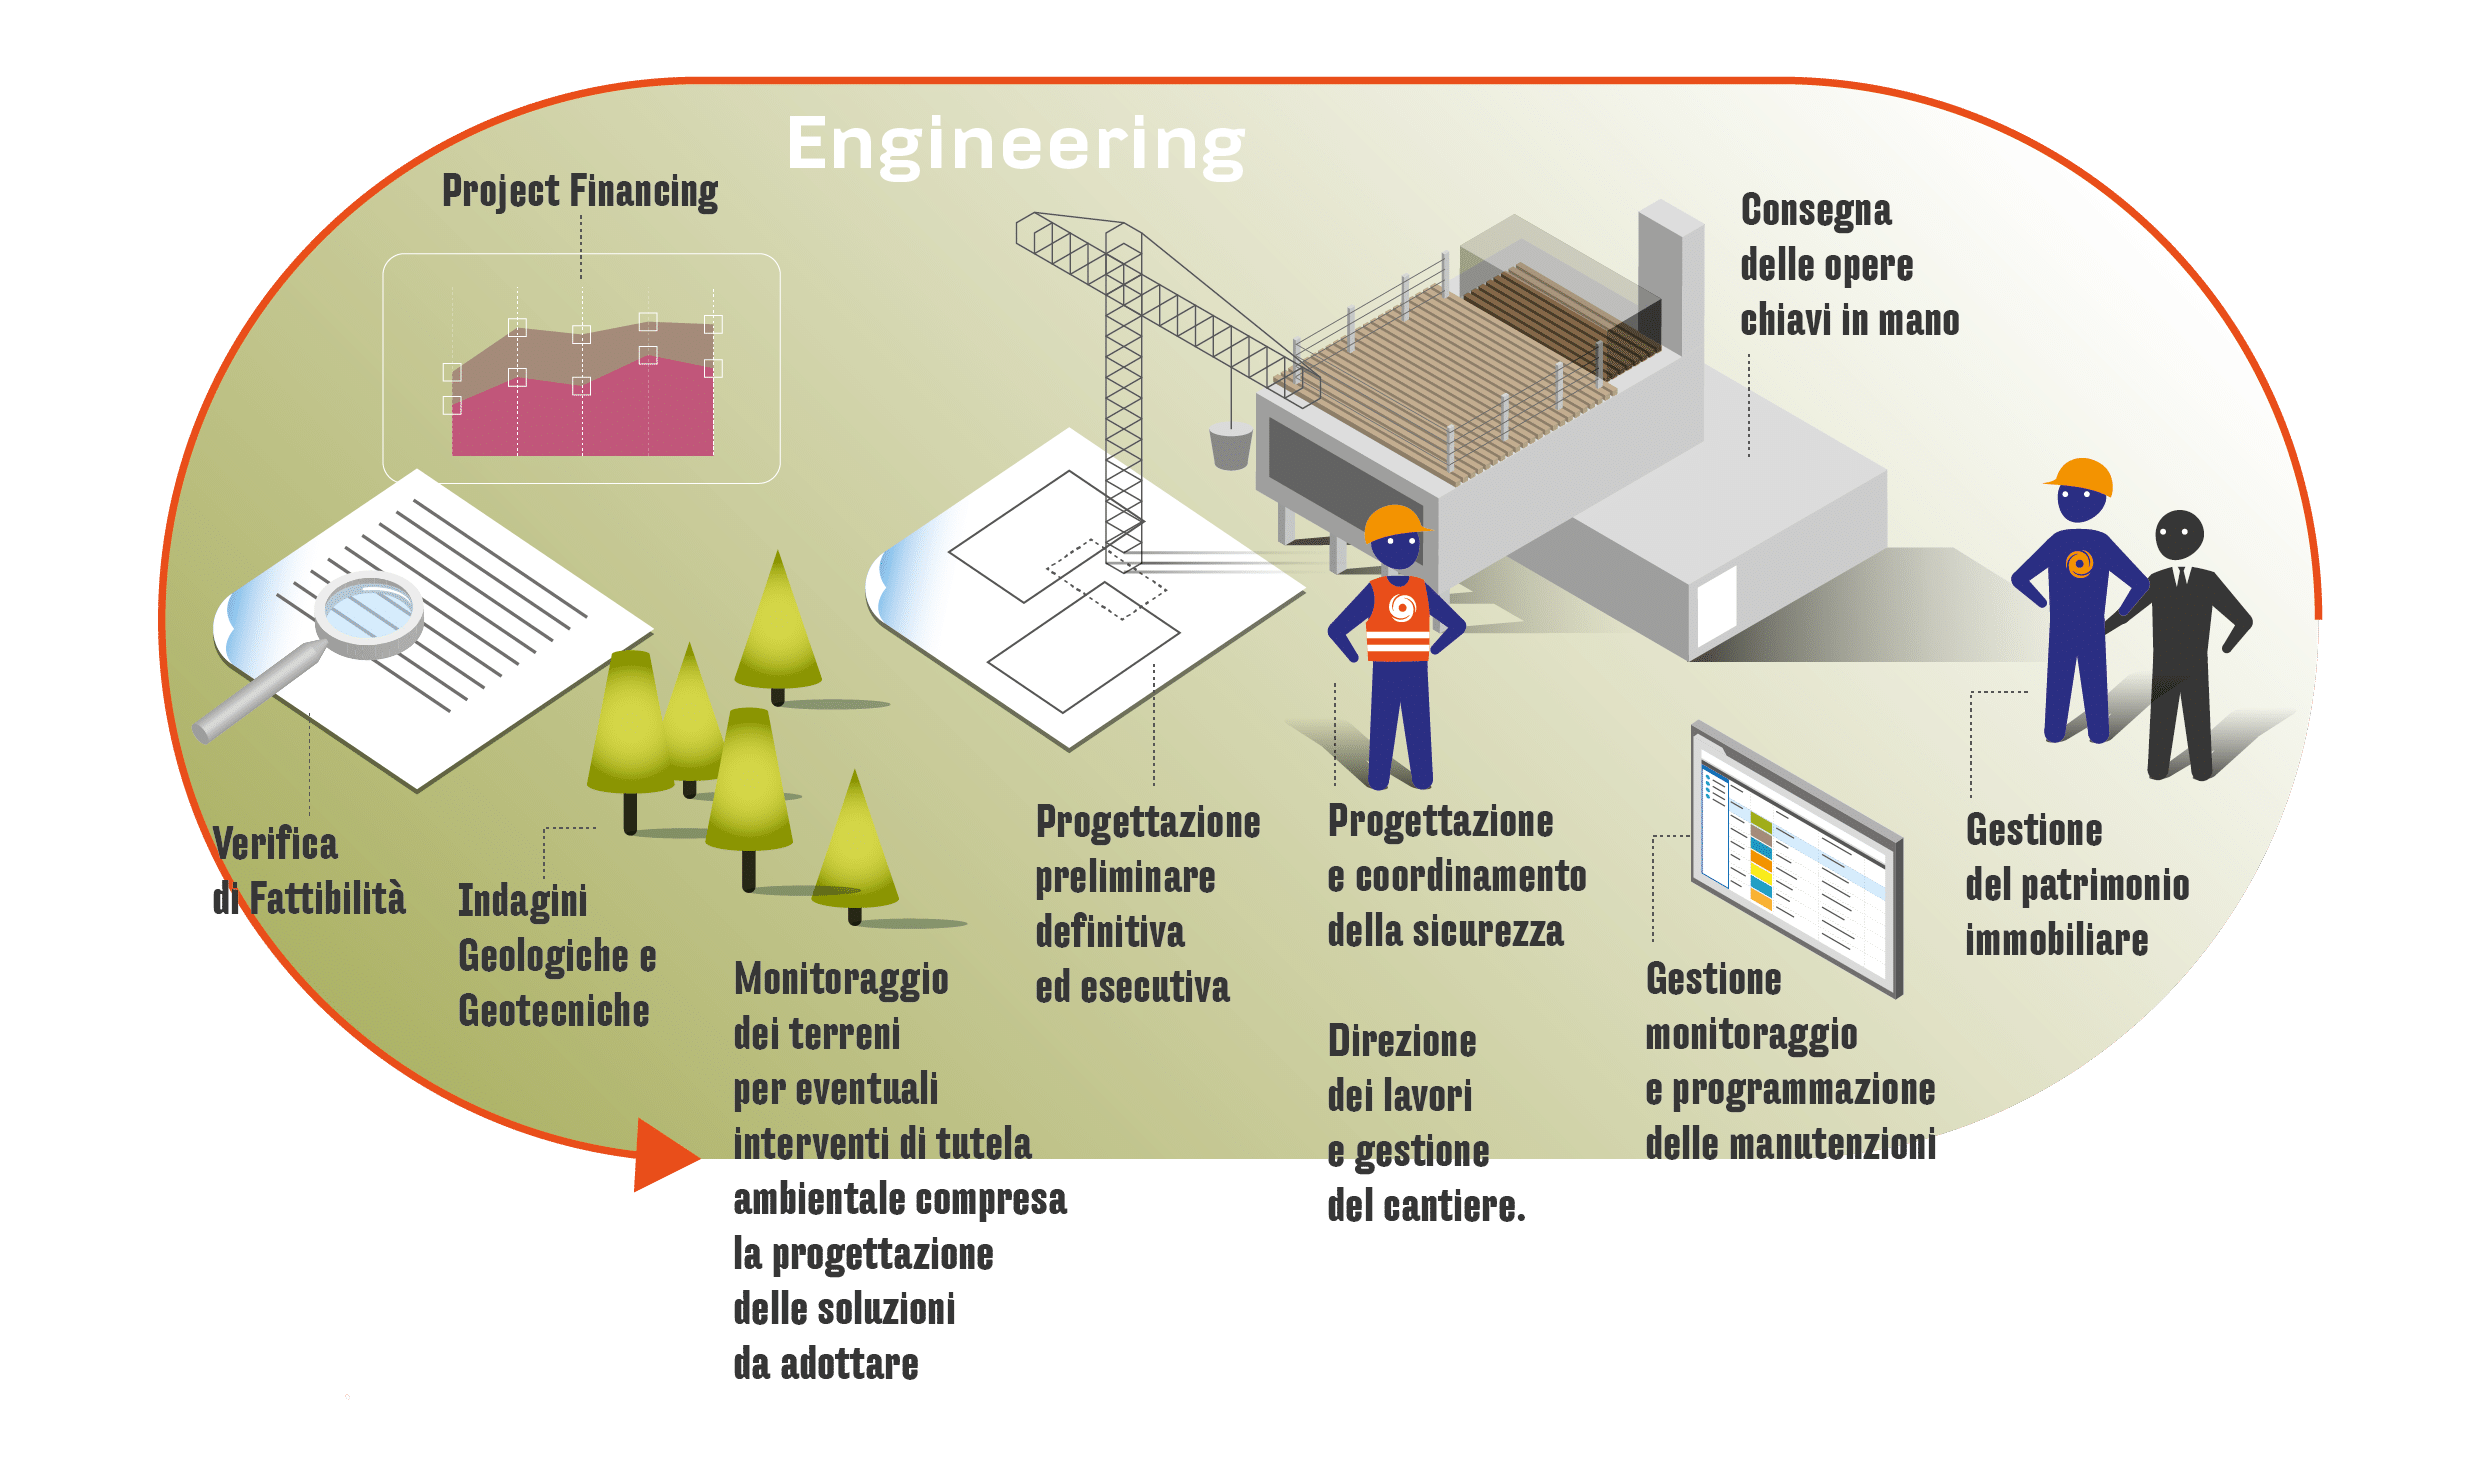 ect-16-infografica-engineering